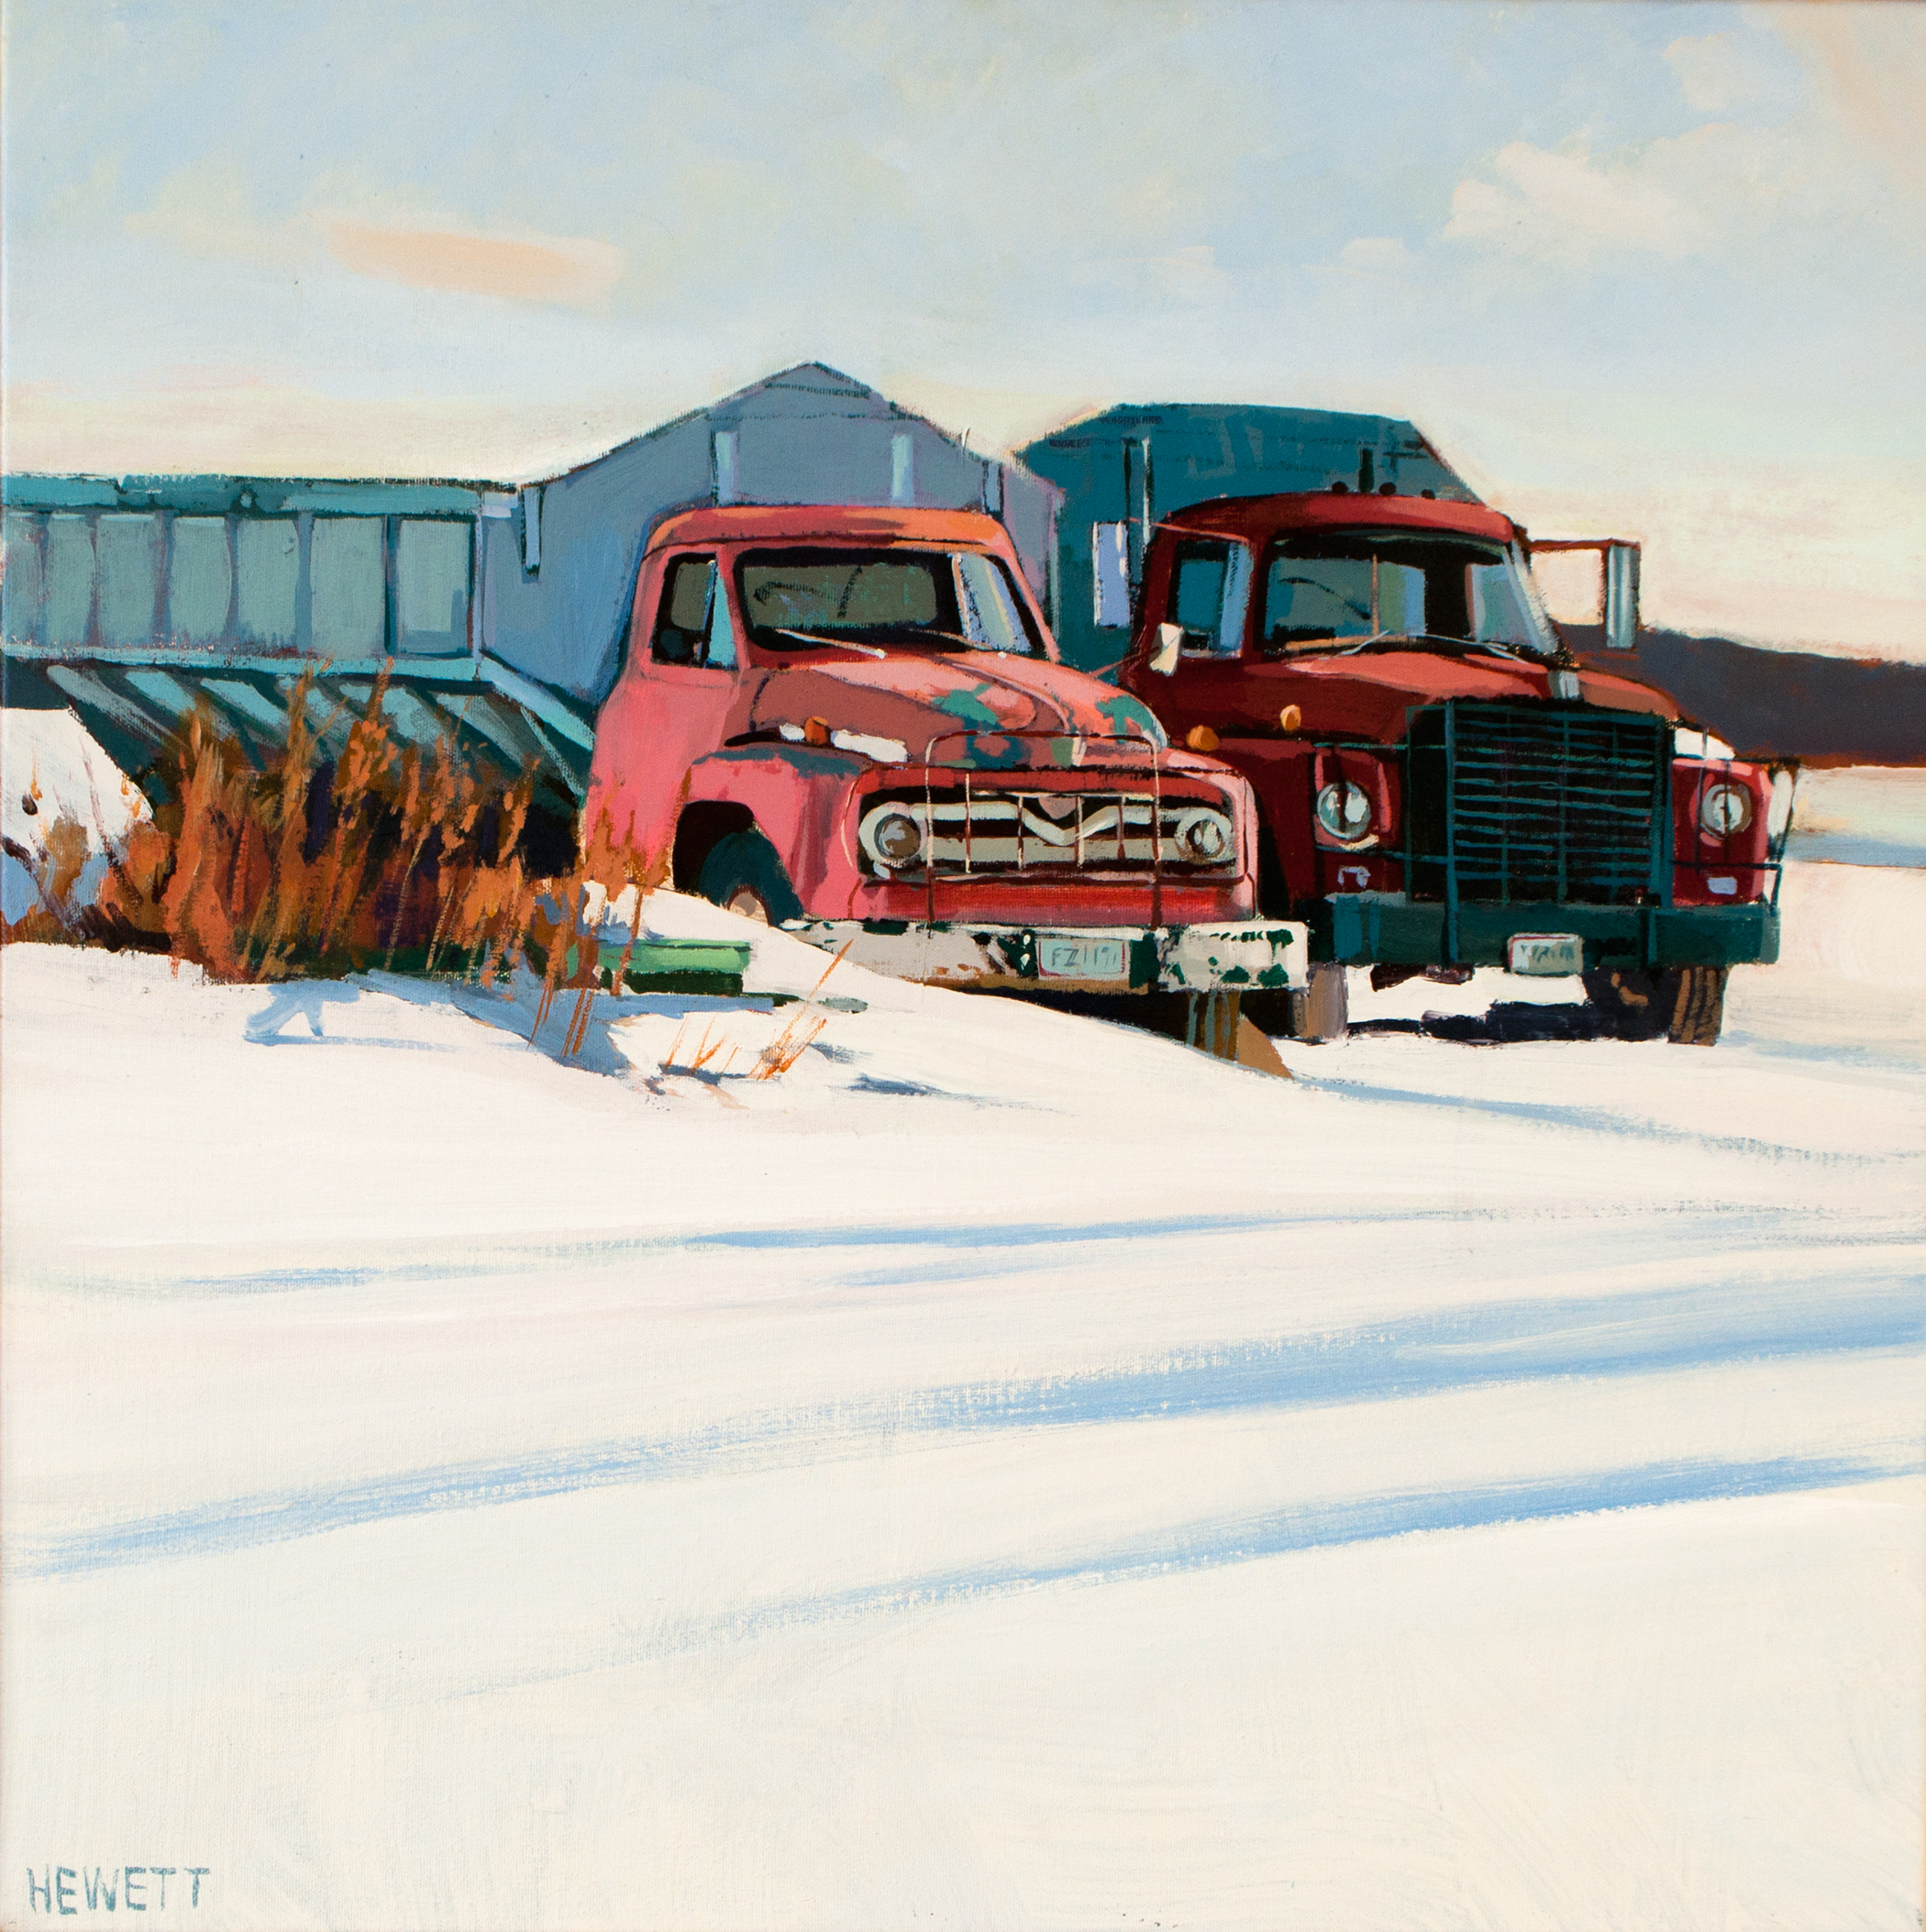 Trucks in Snow